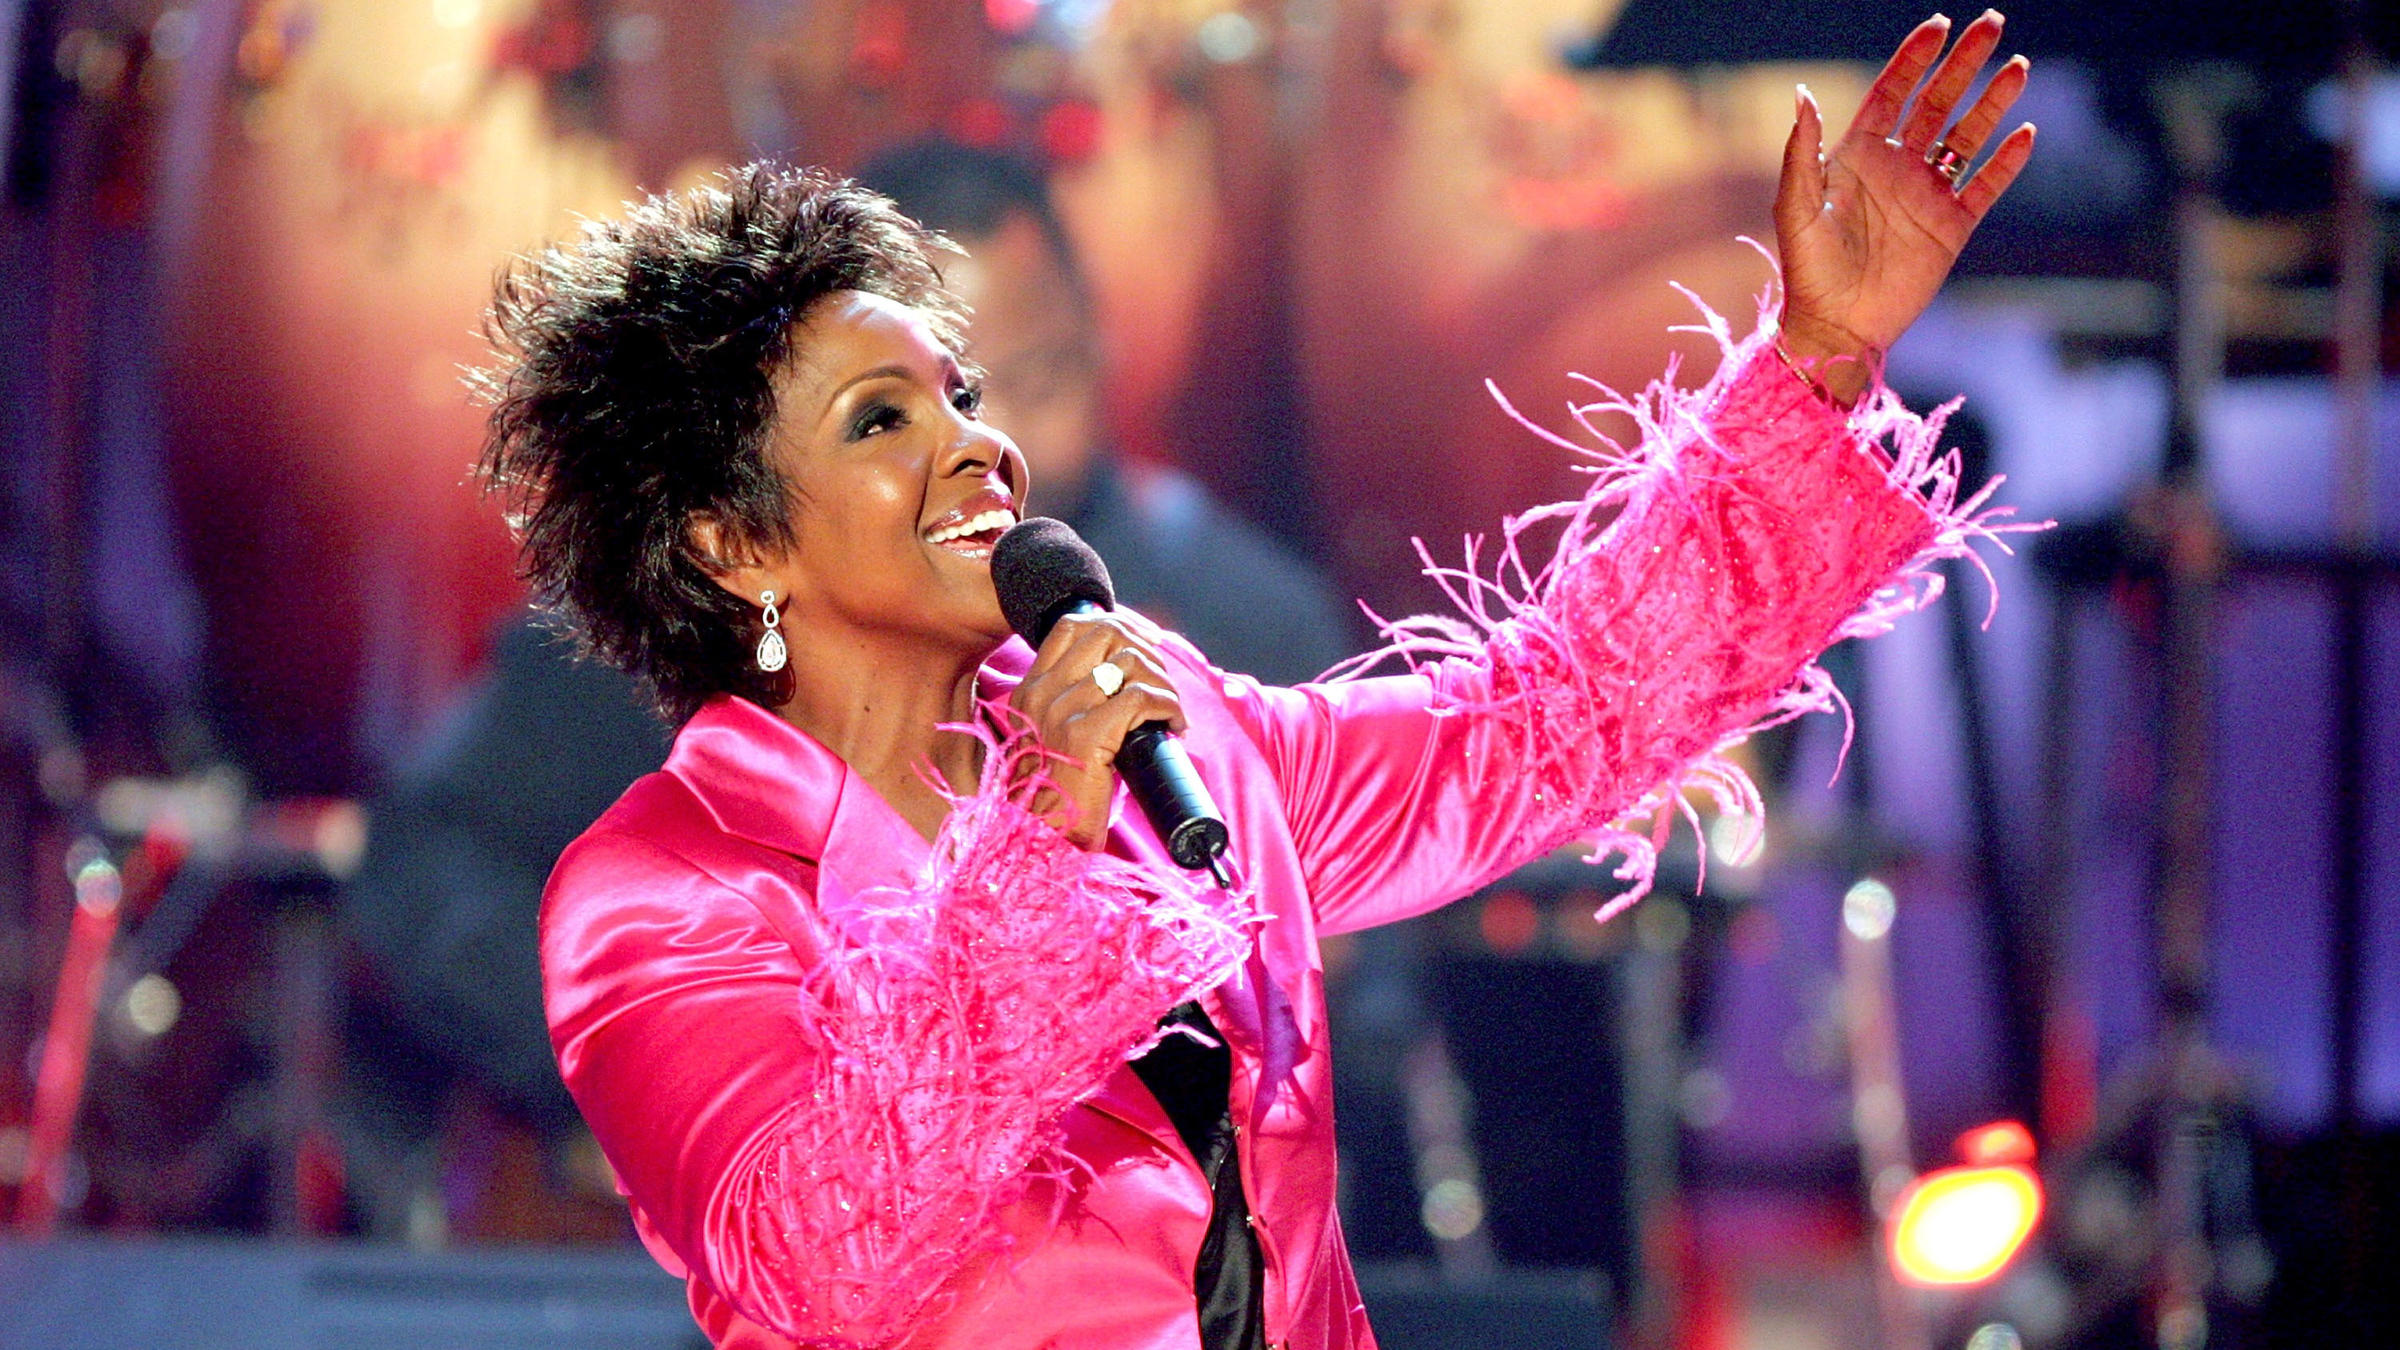 Gladys Knight at Ravinia Festival